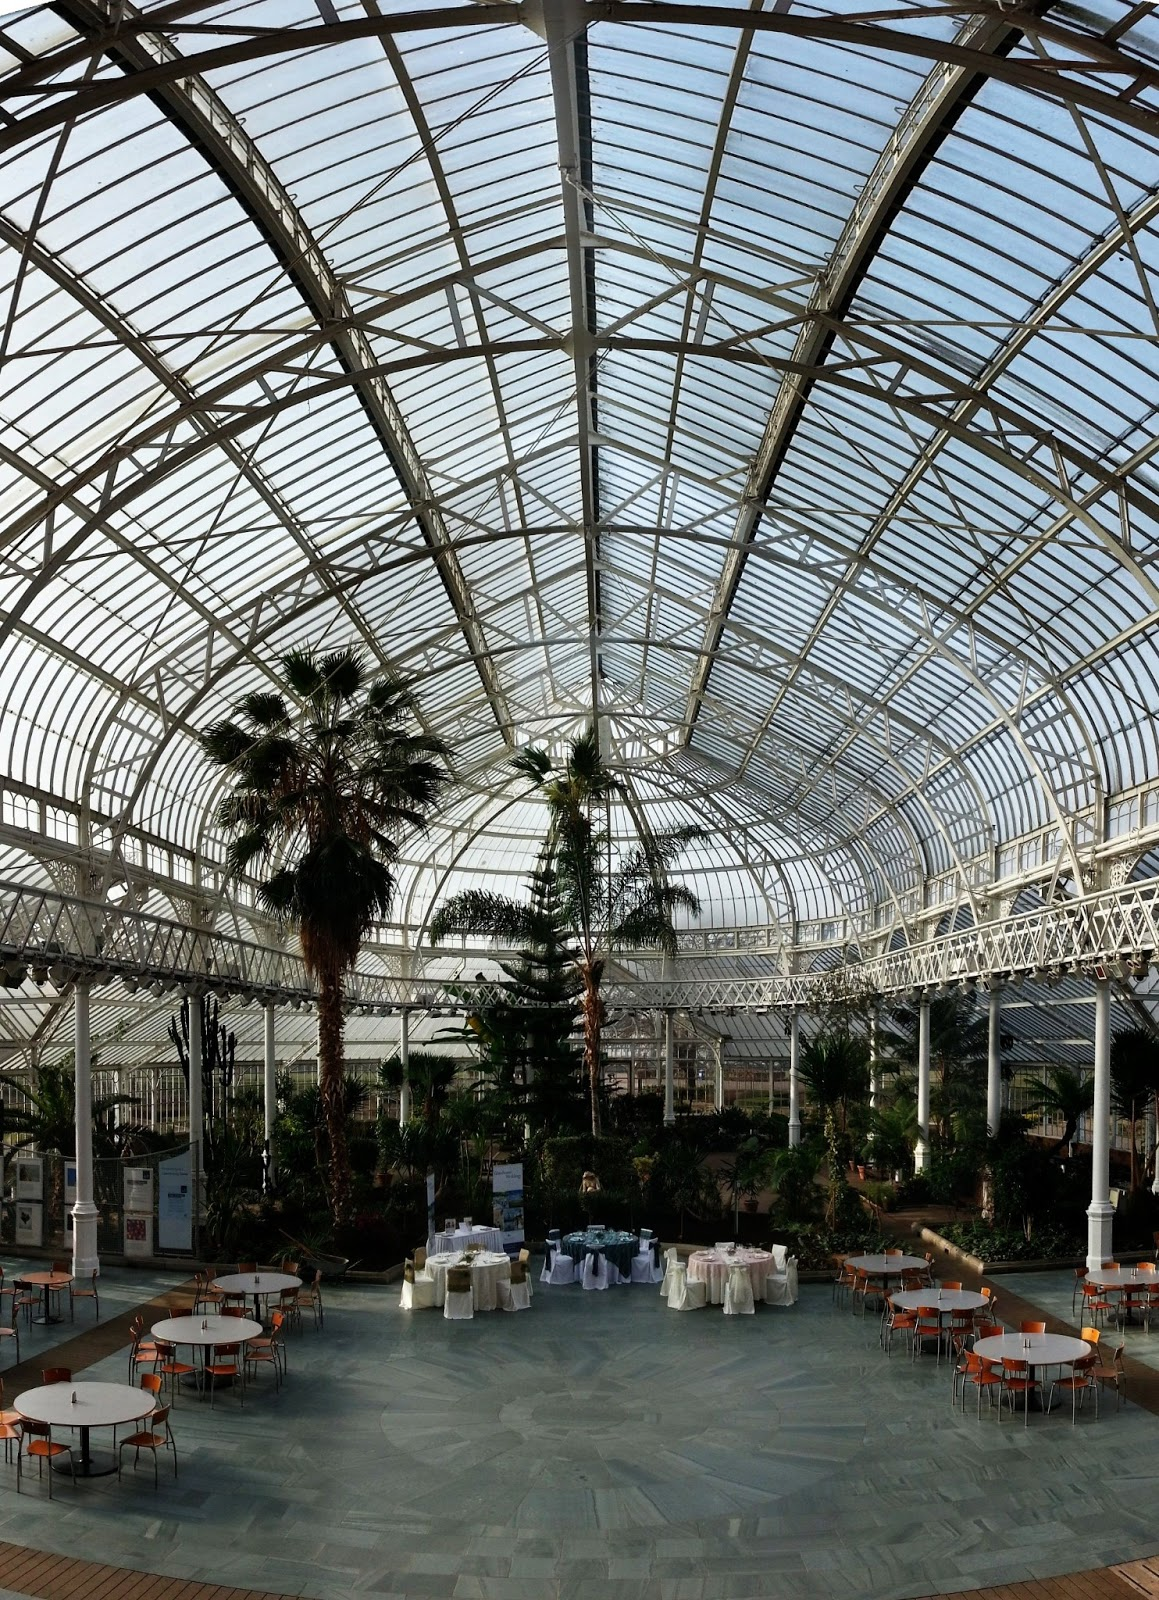 Peoples Palace, Winter Gardens, Glasgow